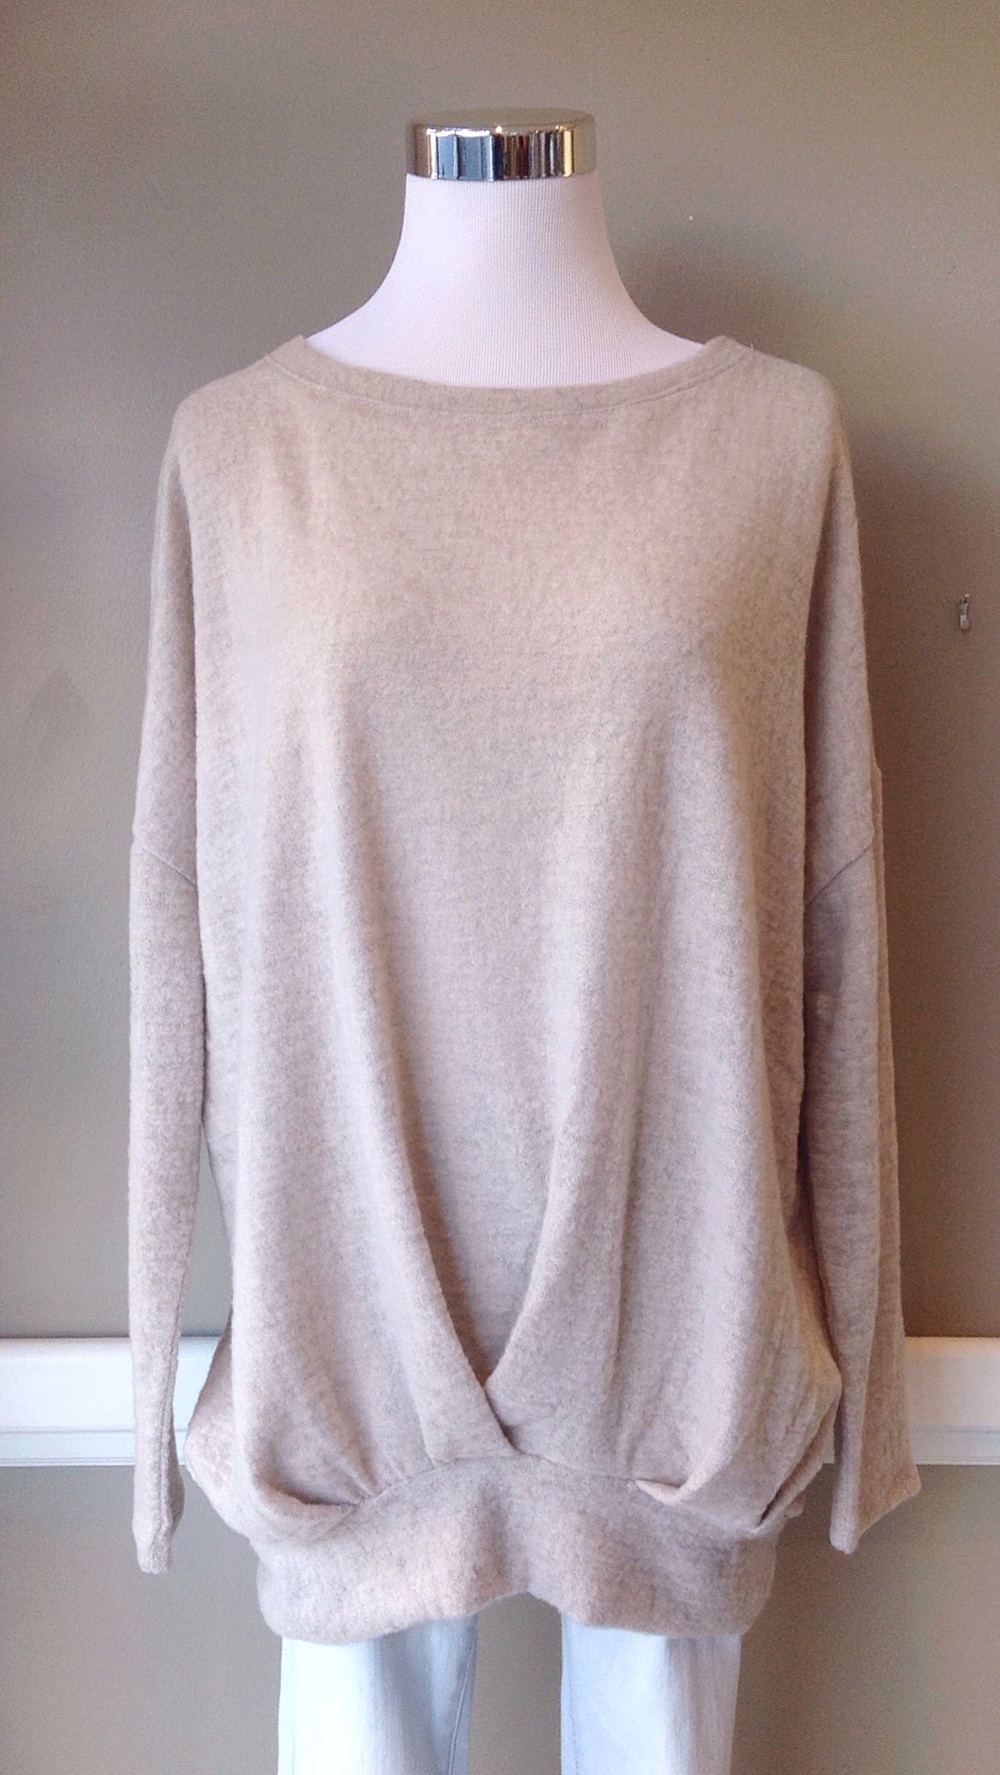 Taupe sweater with boatneck and inverted pleat, $35